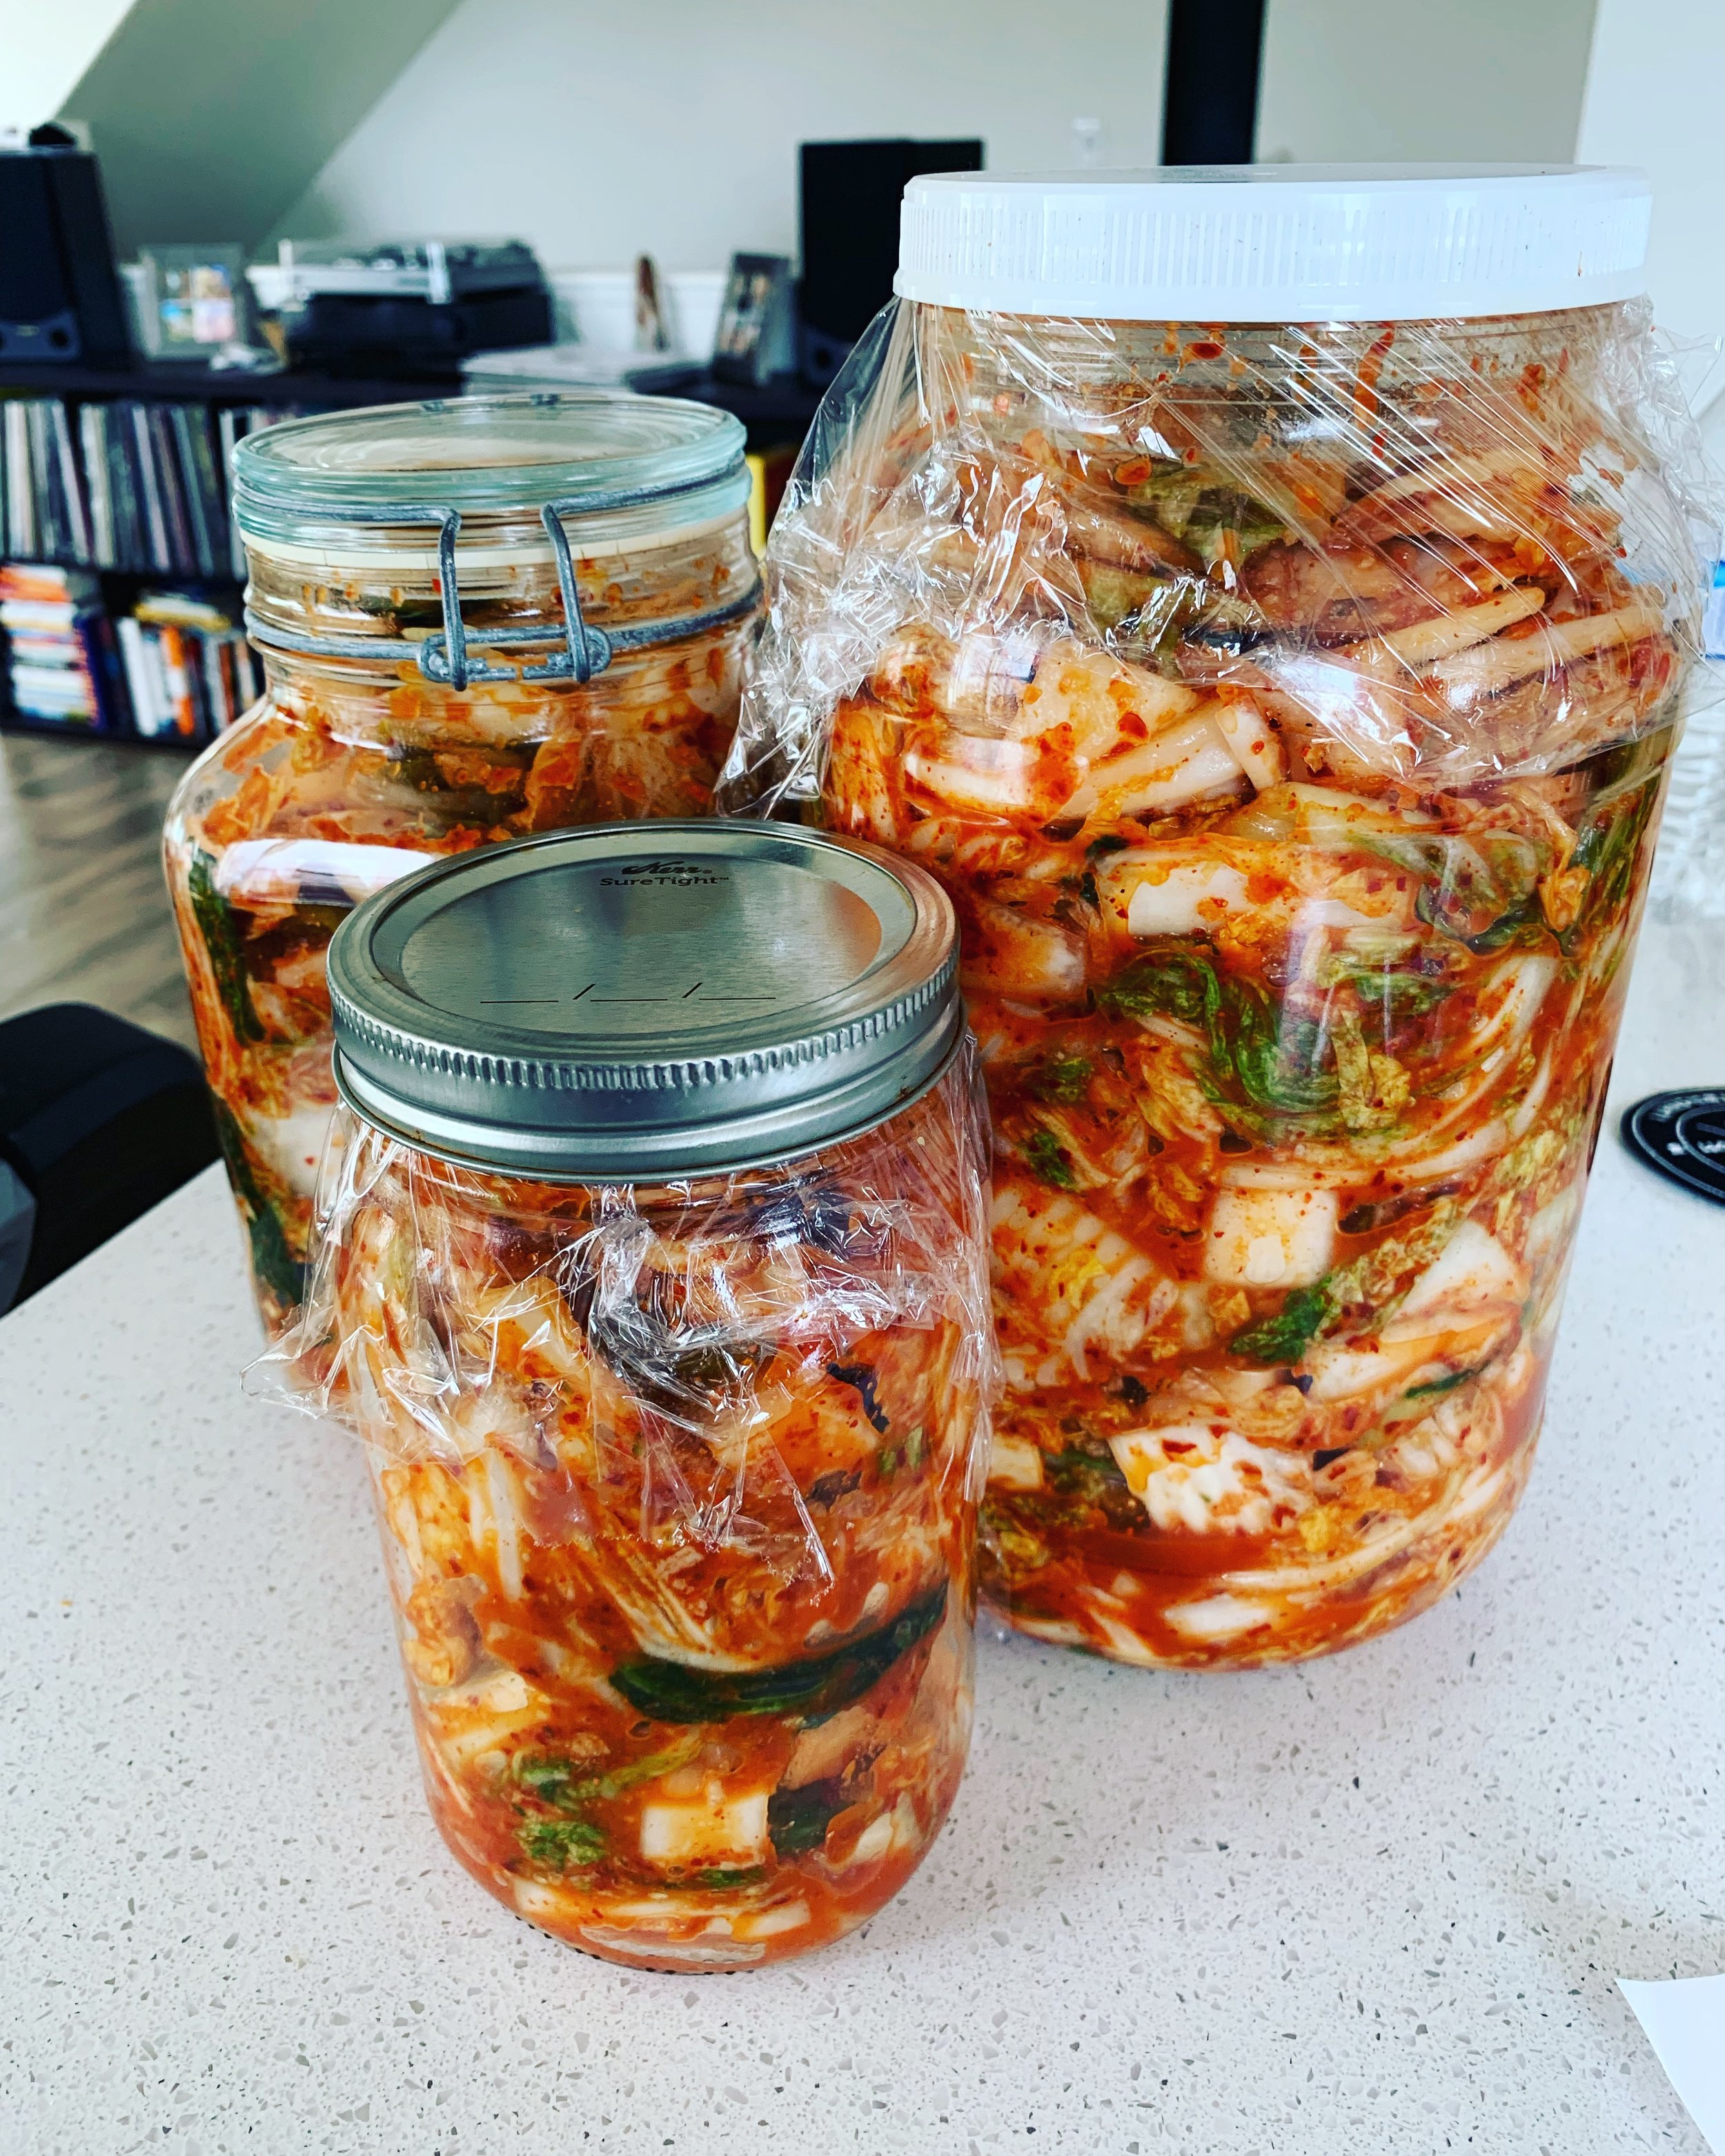 Note that when I make kimchi, I usually get 3 heads of Napa cabbage and huge daikon radish